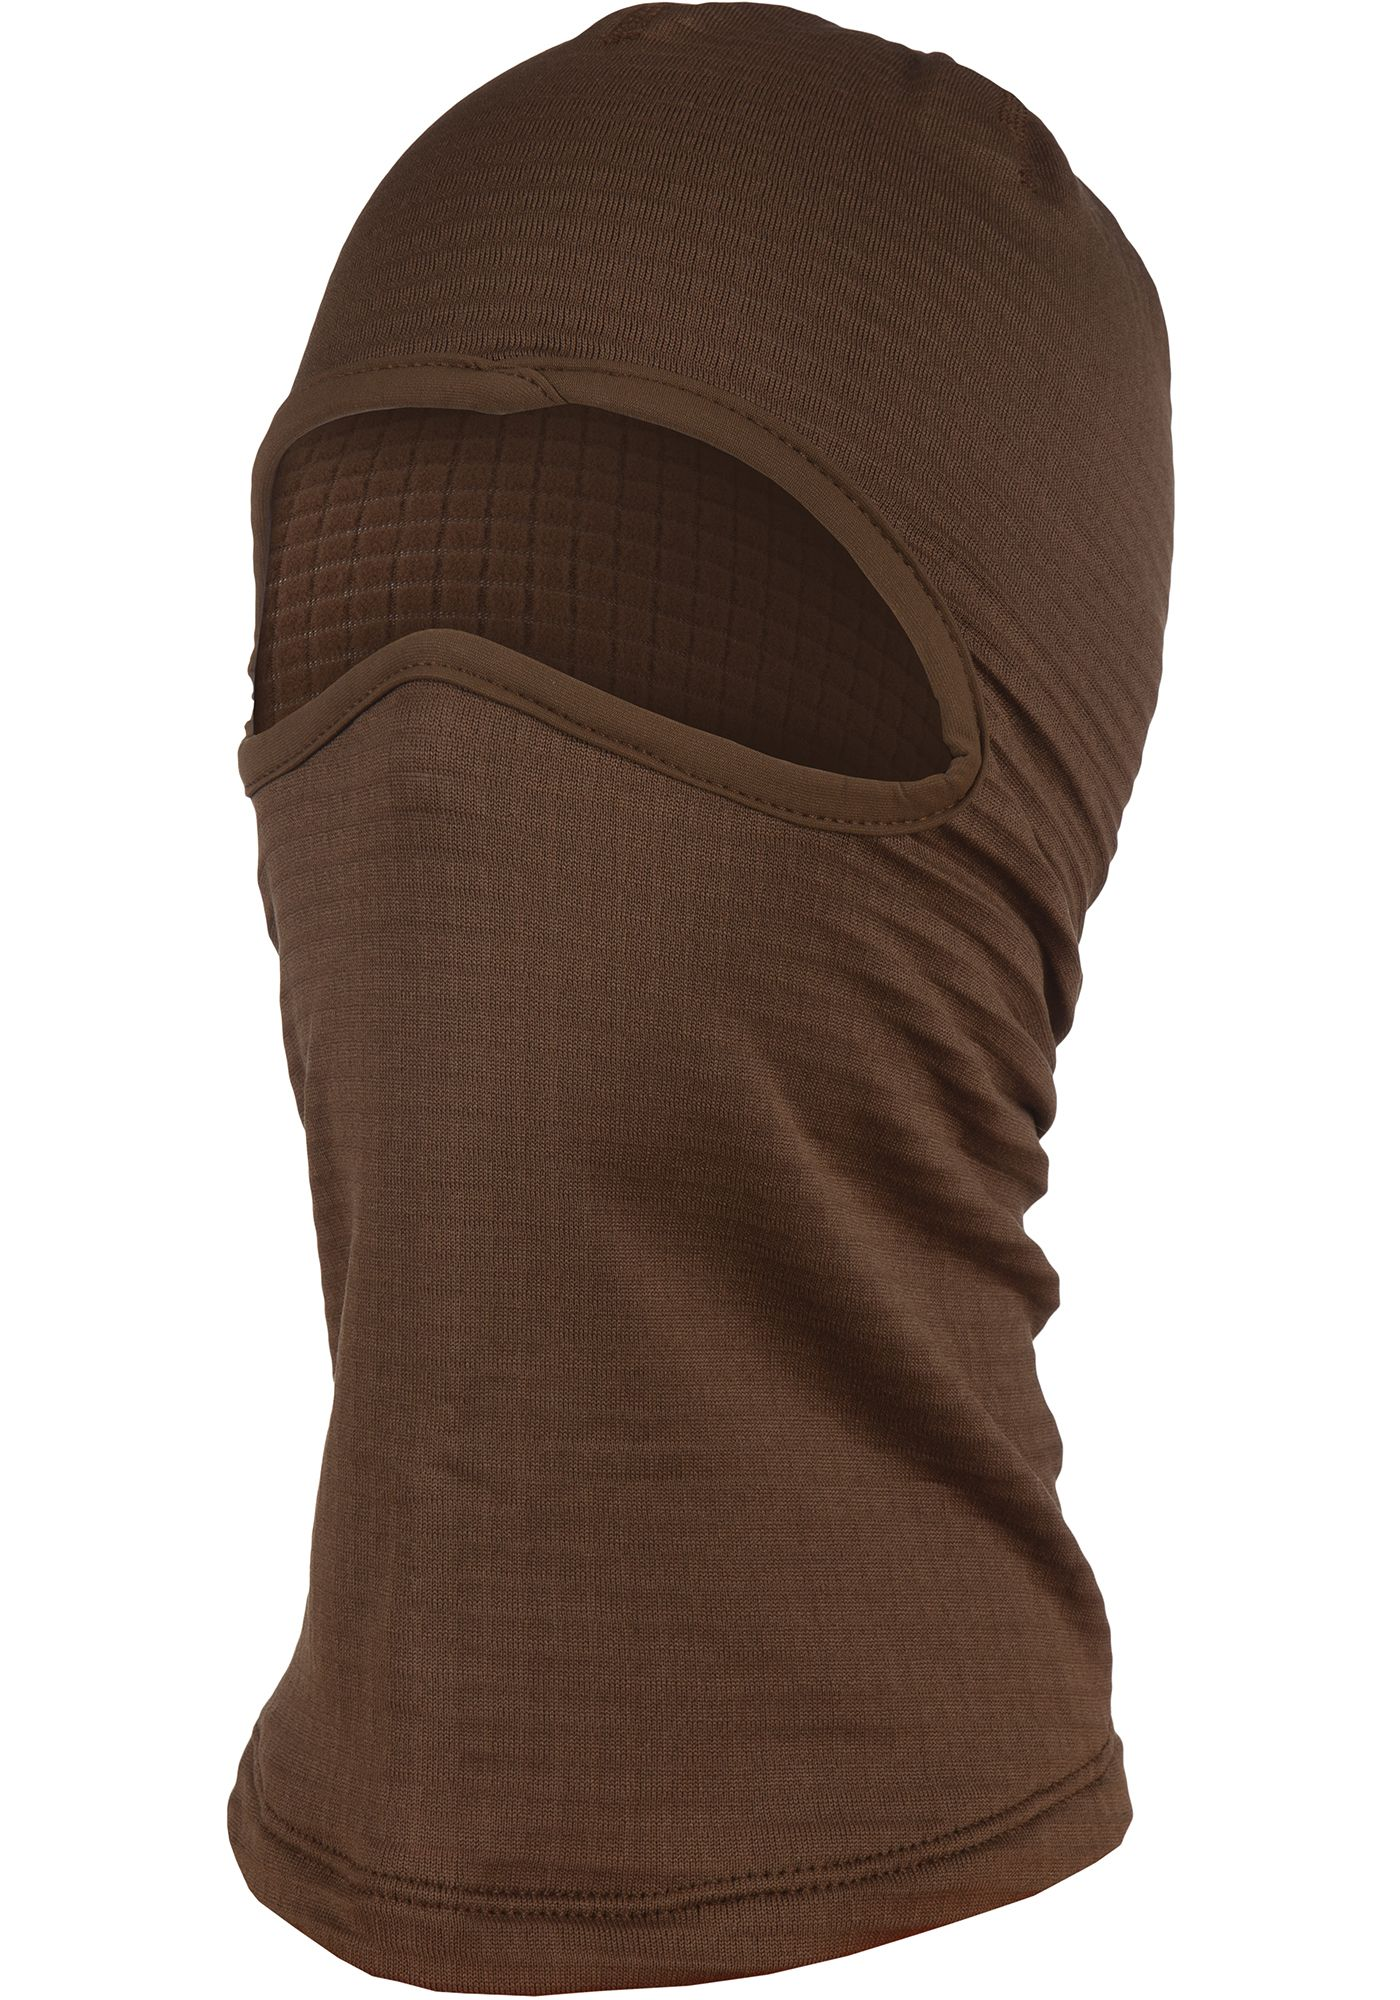 Blocker Outdoors Whitewater Tactical Balaclava